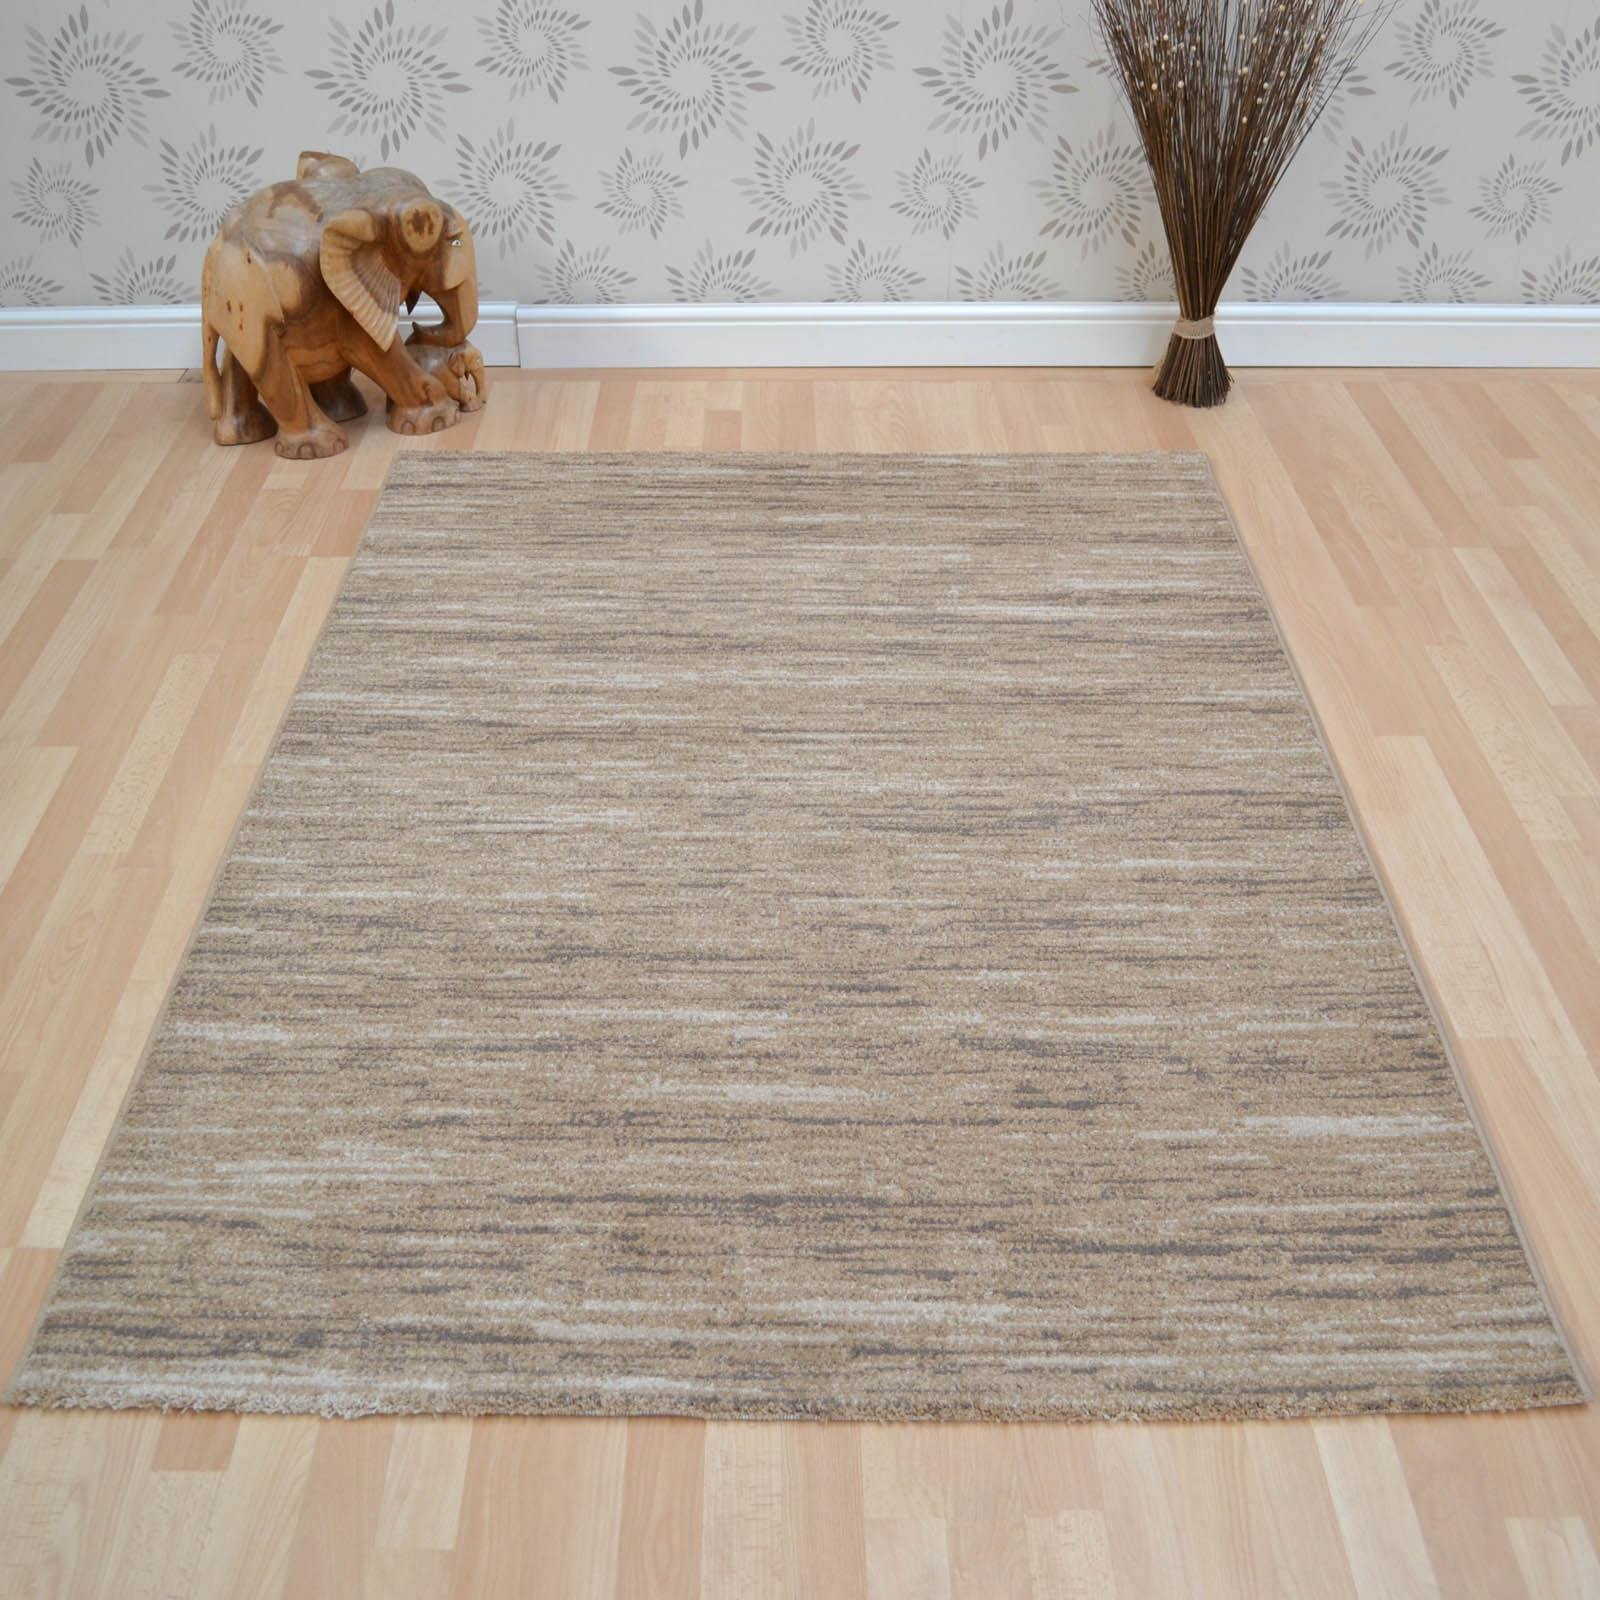 Tivoli Rugs 5903 241 Beige Brown